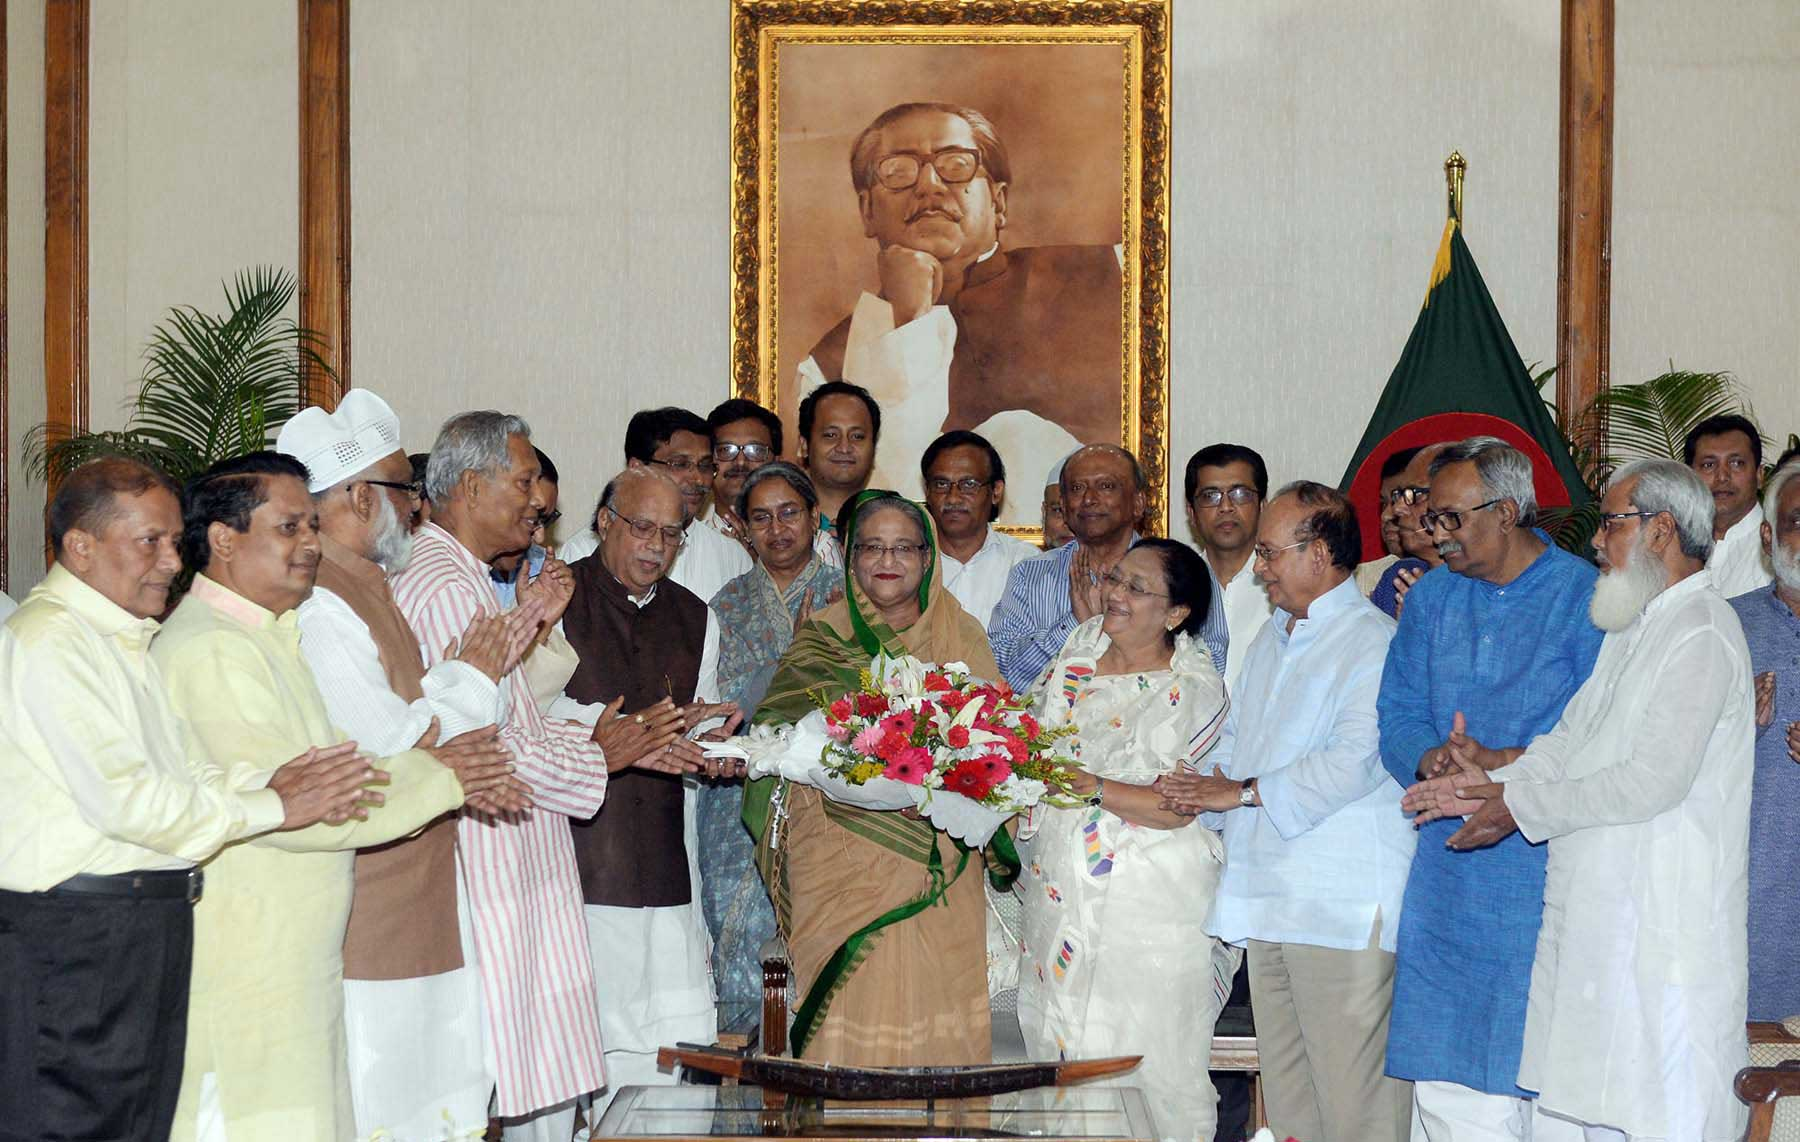 38th homecoming day of Sheikh Hasina observed